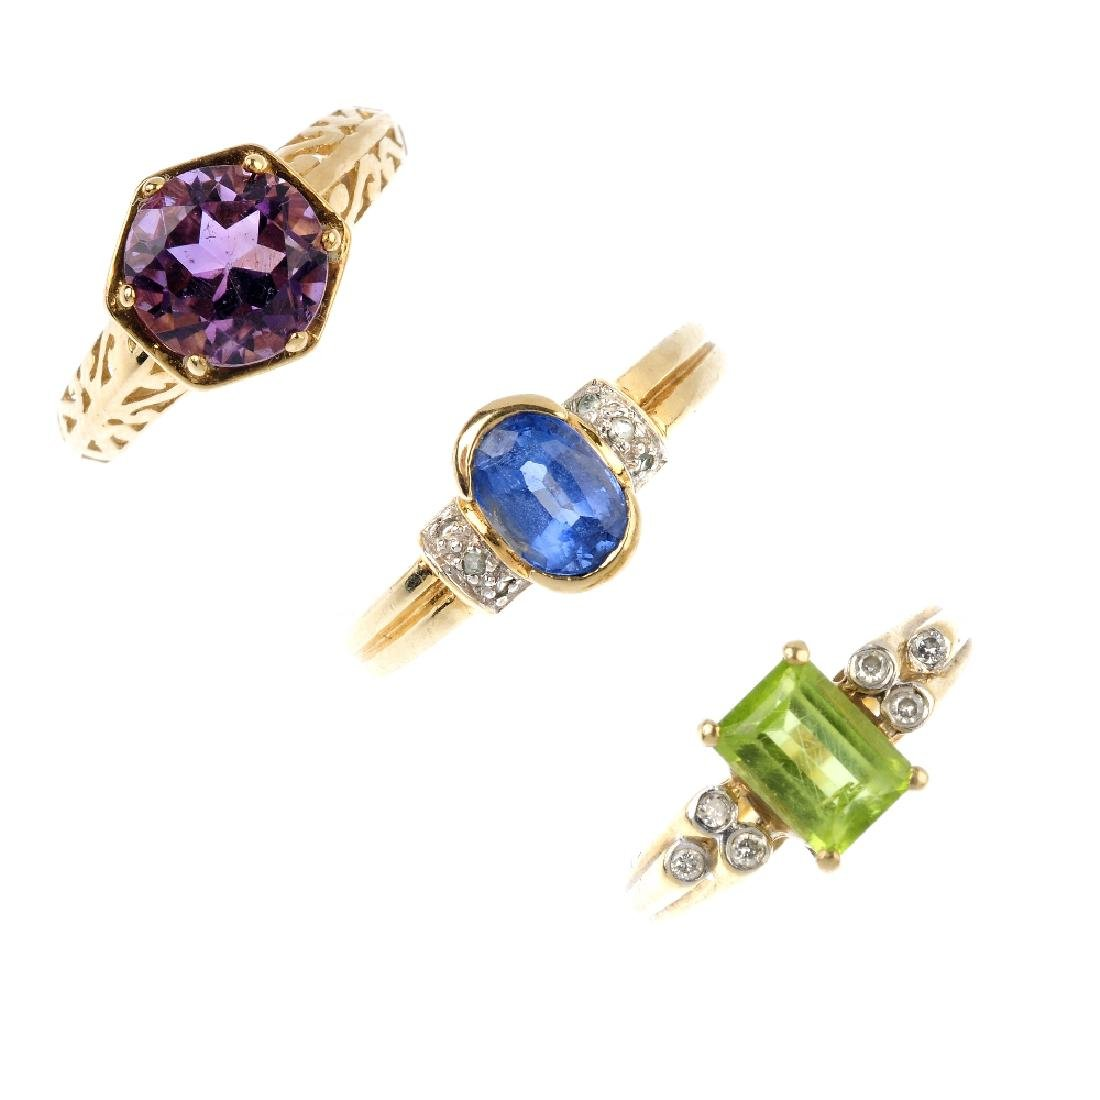 Four 9ct gold gem-set rings. To include an amethyst